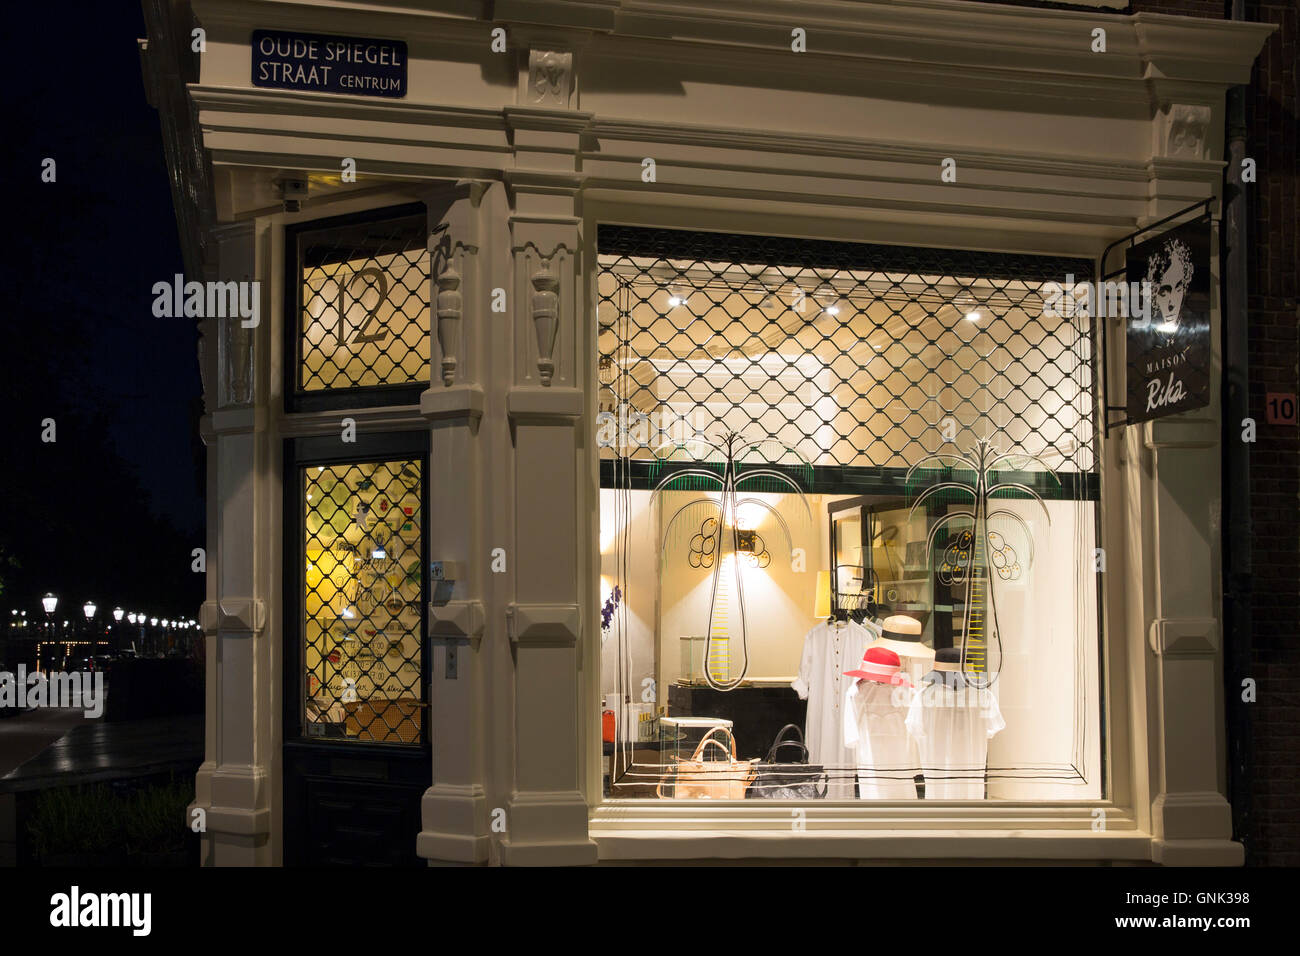 Spiegel Amsterdam Designer Fashion Hat Shop Maison Rika At Oude Spiegel Straat And